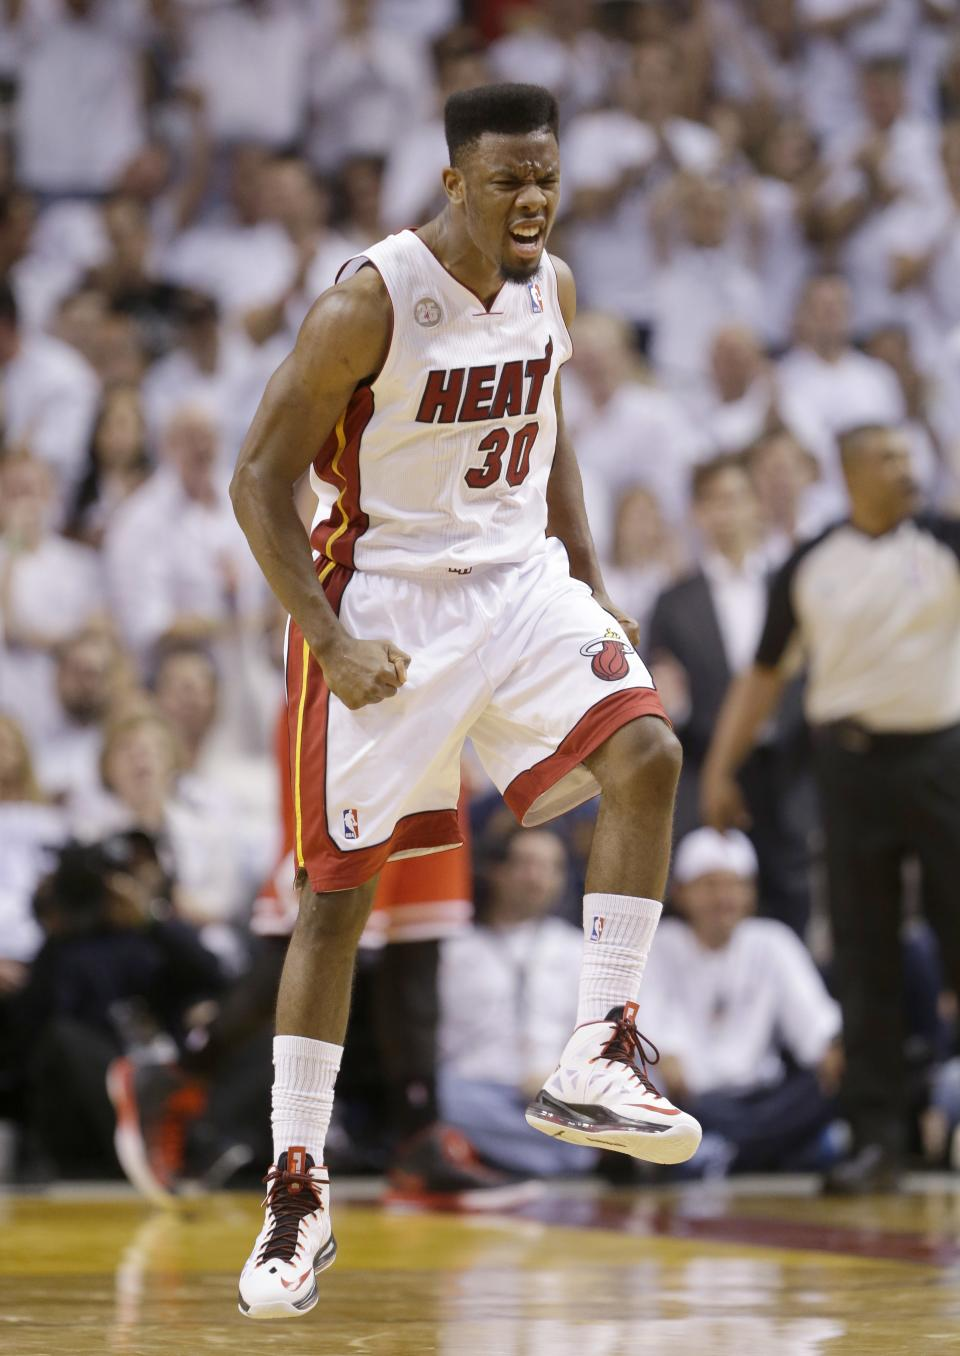 Miami Heat guard Norris Cole celebrates after dunking to put the Heat ahead of the Chicago Bulls during the second half of Game 5 of an NBA basketball playoffs Eastern Conference semifinal, Wednesday, May 15, 2013, in Miami. The Heat defeated the Bulls 94-91 and advance to the conference finals. (AP Photo/Wilfredo Lee)